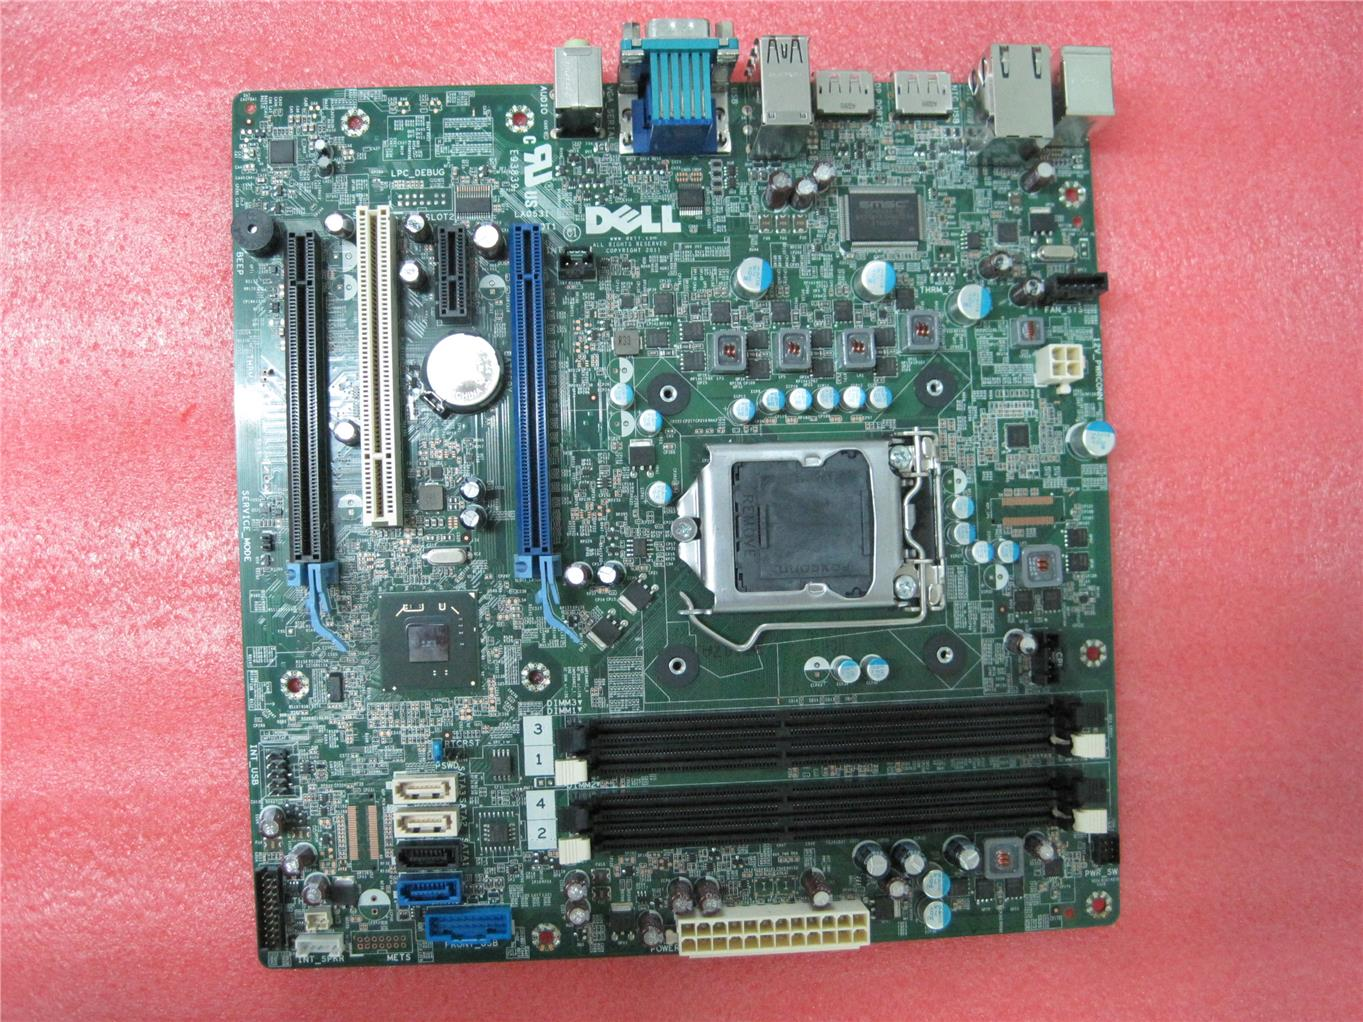 Dell Motherboard Schematics further Search besides Dell Xps 8700 Motherboard Wiring Diagram besides Dell Dimension 8300 Motherboard Diagram further Dell Motherboard Schematic Diagram. on dell xps 8500 diagram